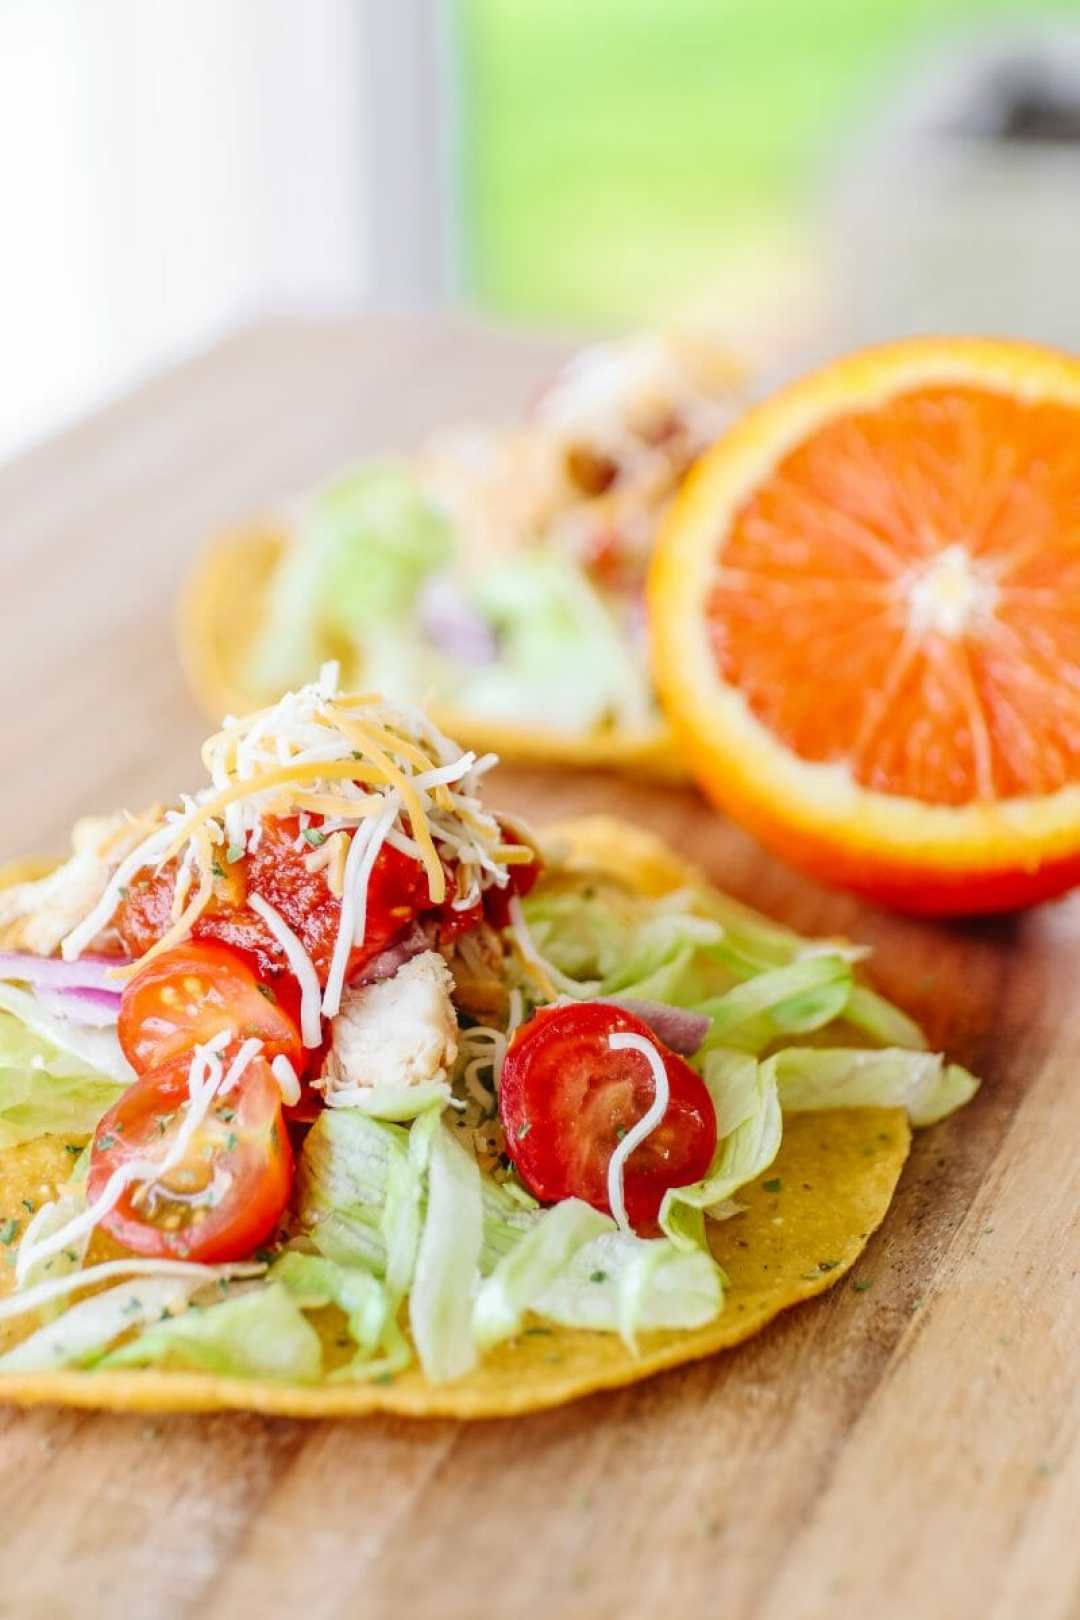 Tostadas Made From The Easiest Crockpot Chicken, Made With Sunkist Oranges by JC Phelps of JCP Eats, A Kentucky Based Food, Travel, and Lifestyle Blog